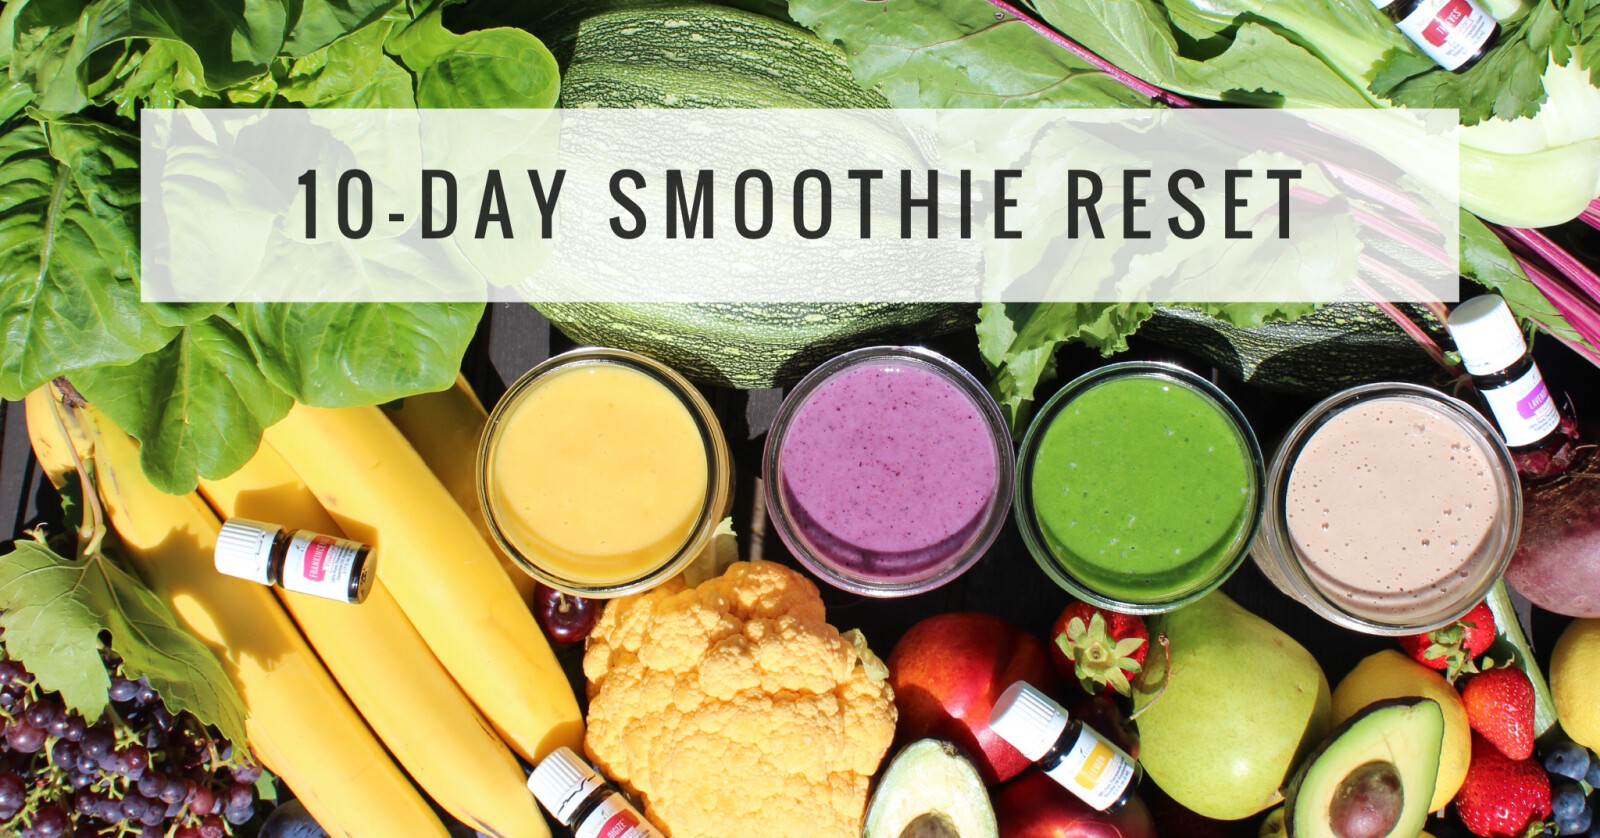 10-DAY SMOOTHIE RESET